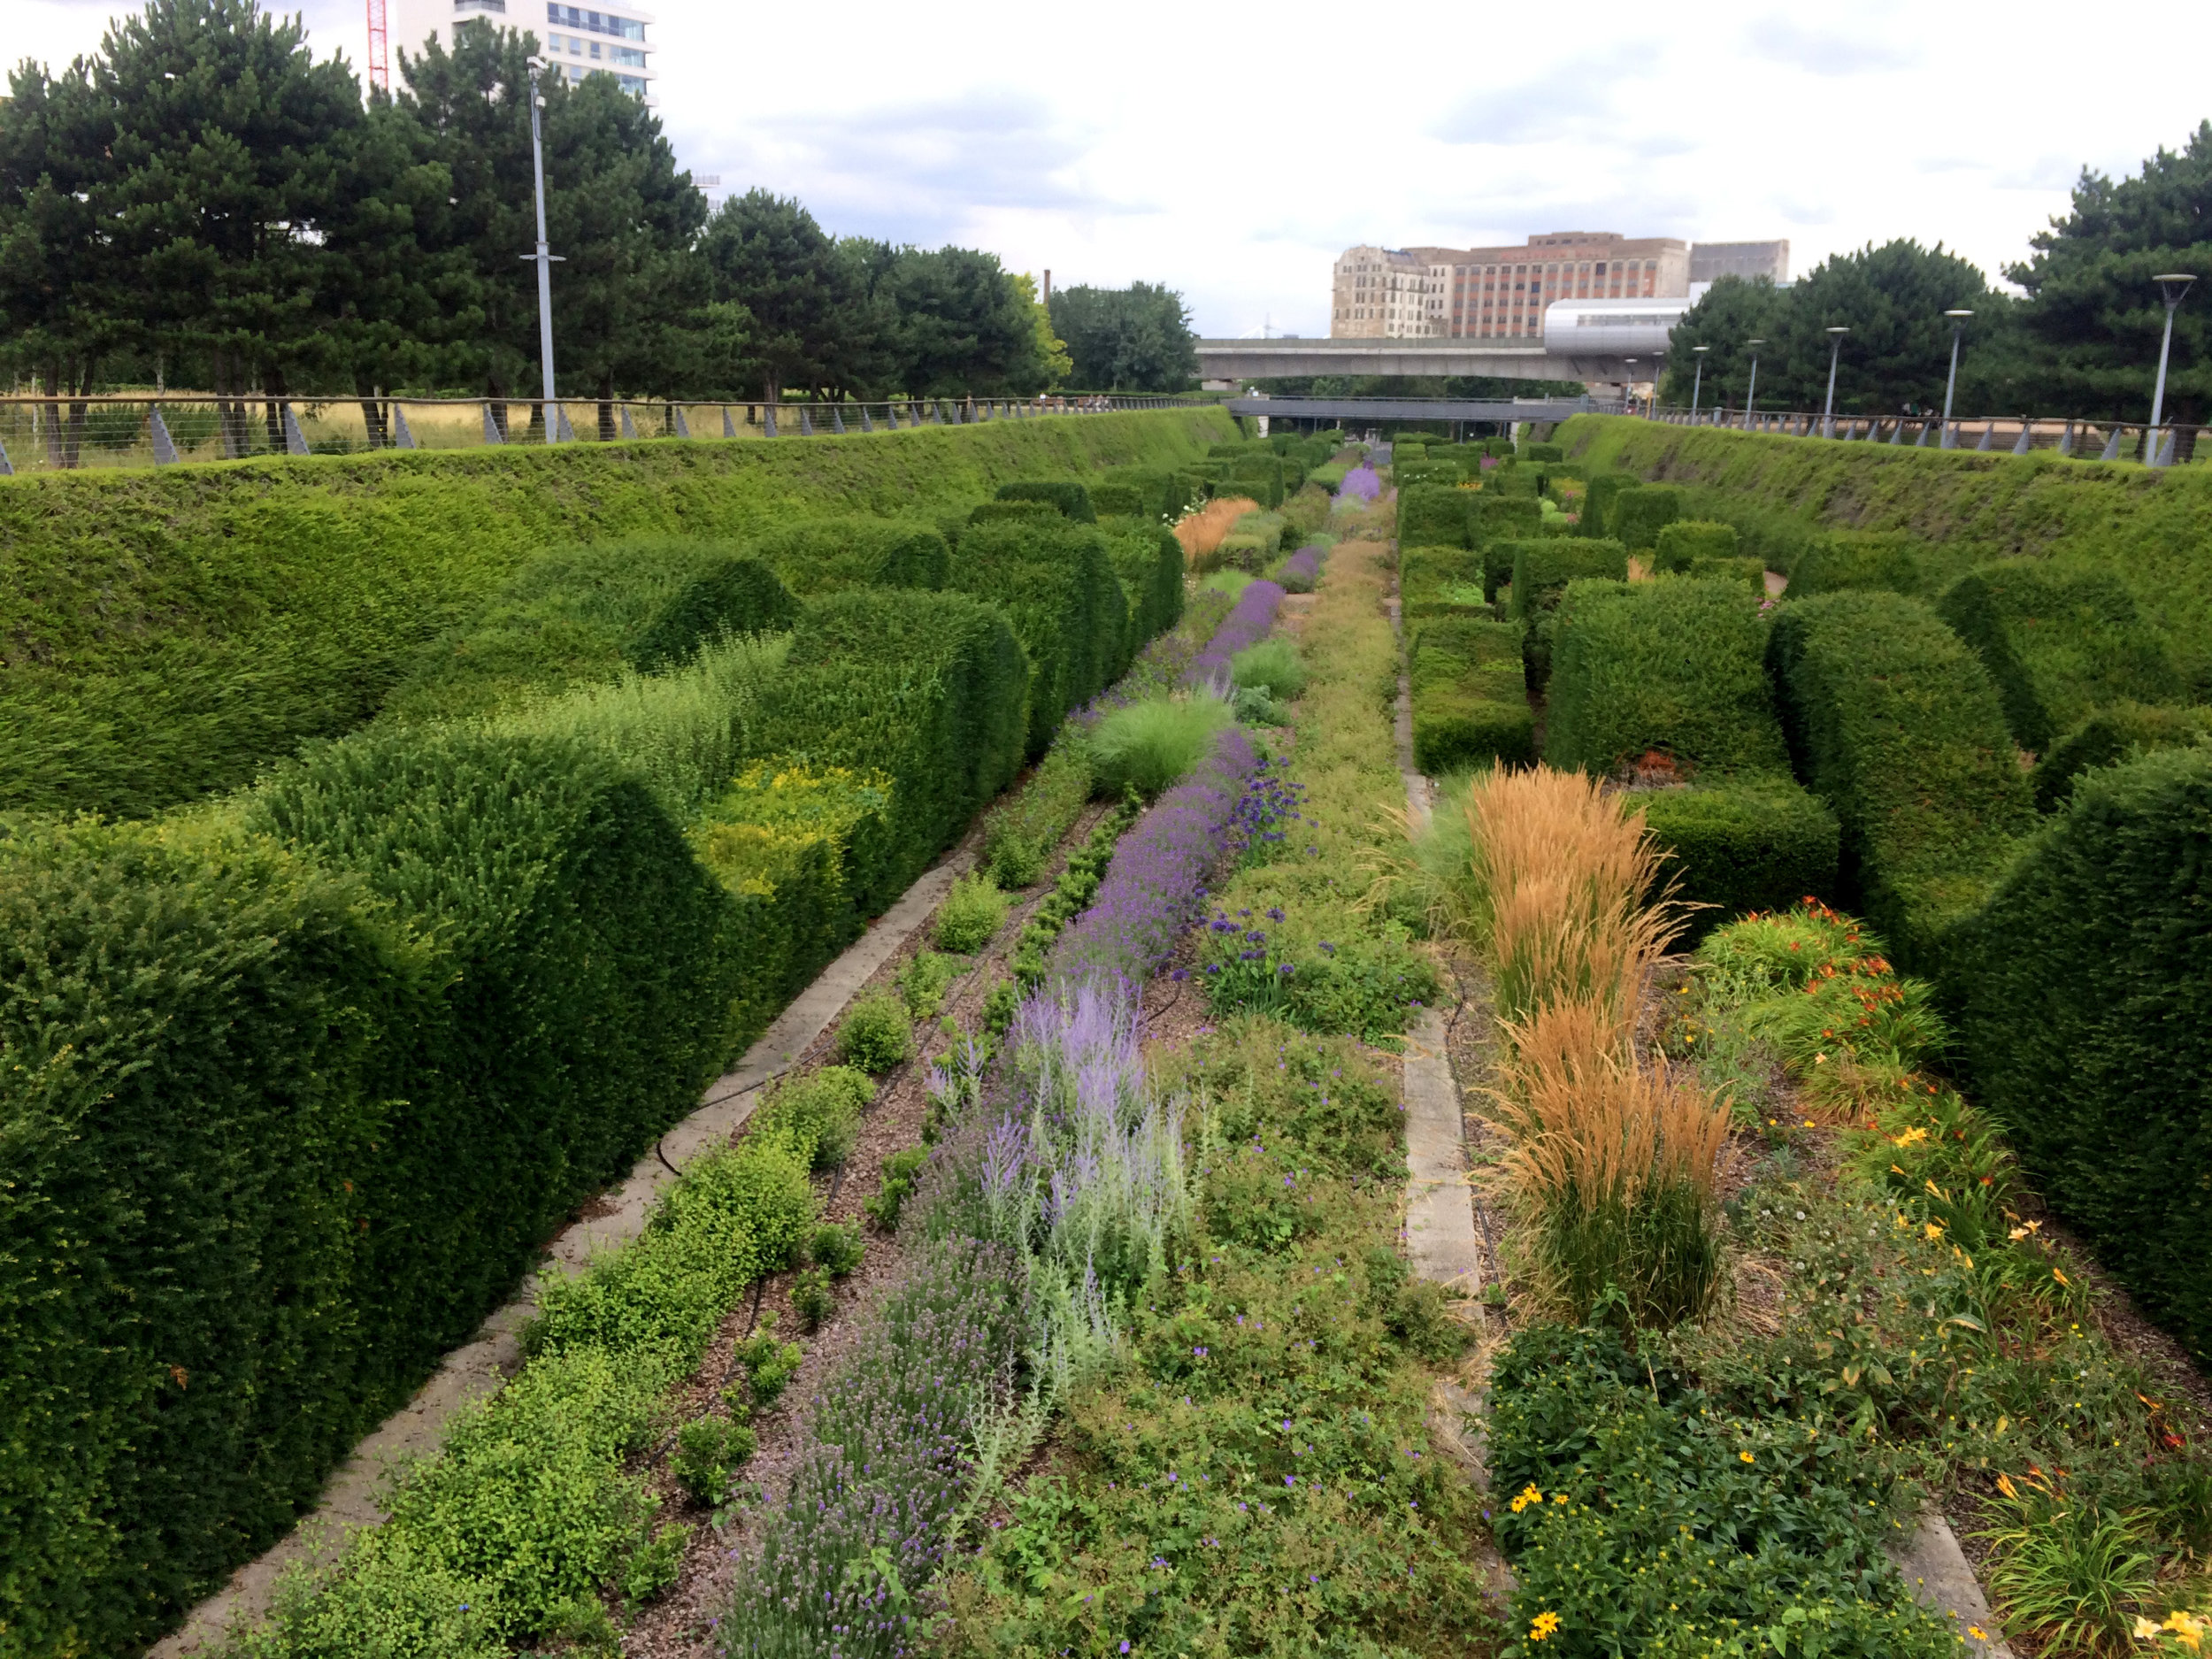 The planting flourishes at the Thames Barrier Park